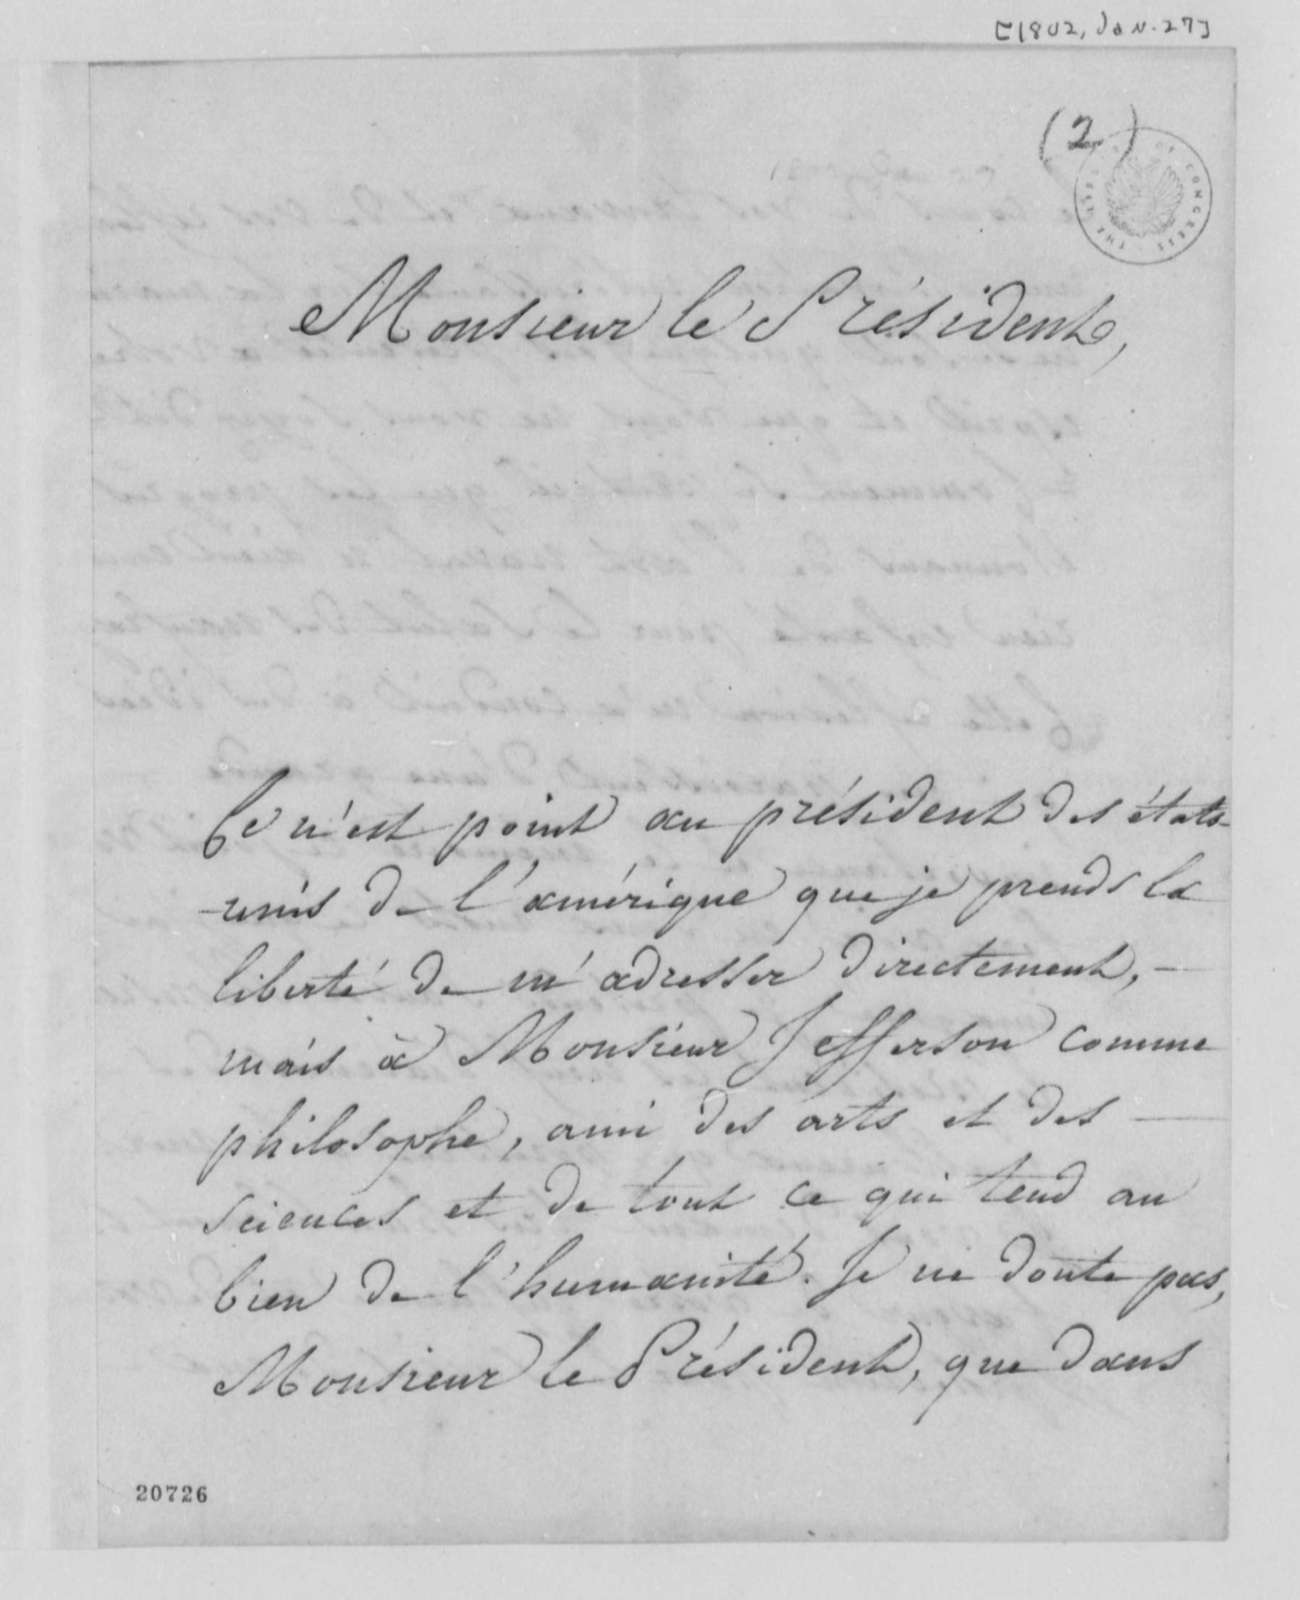 A. du Buc Marentille to Thomas Jefferson, January 27, 1802, in French